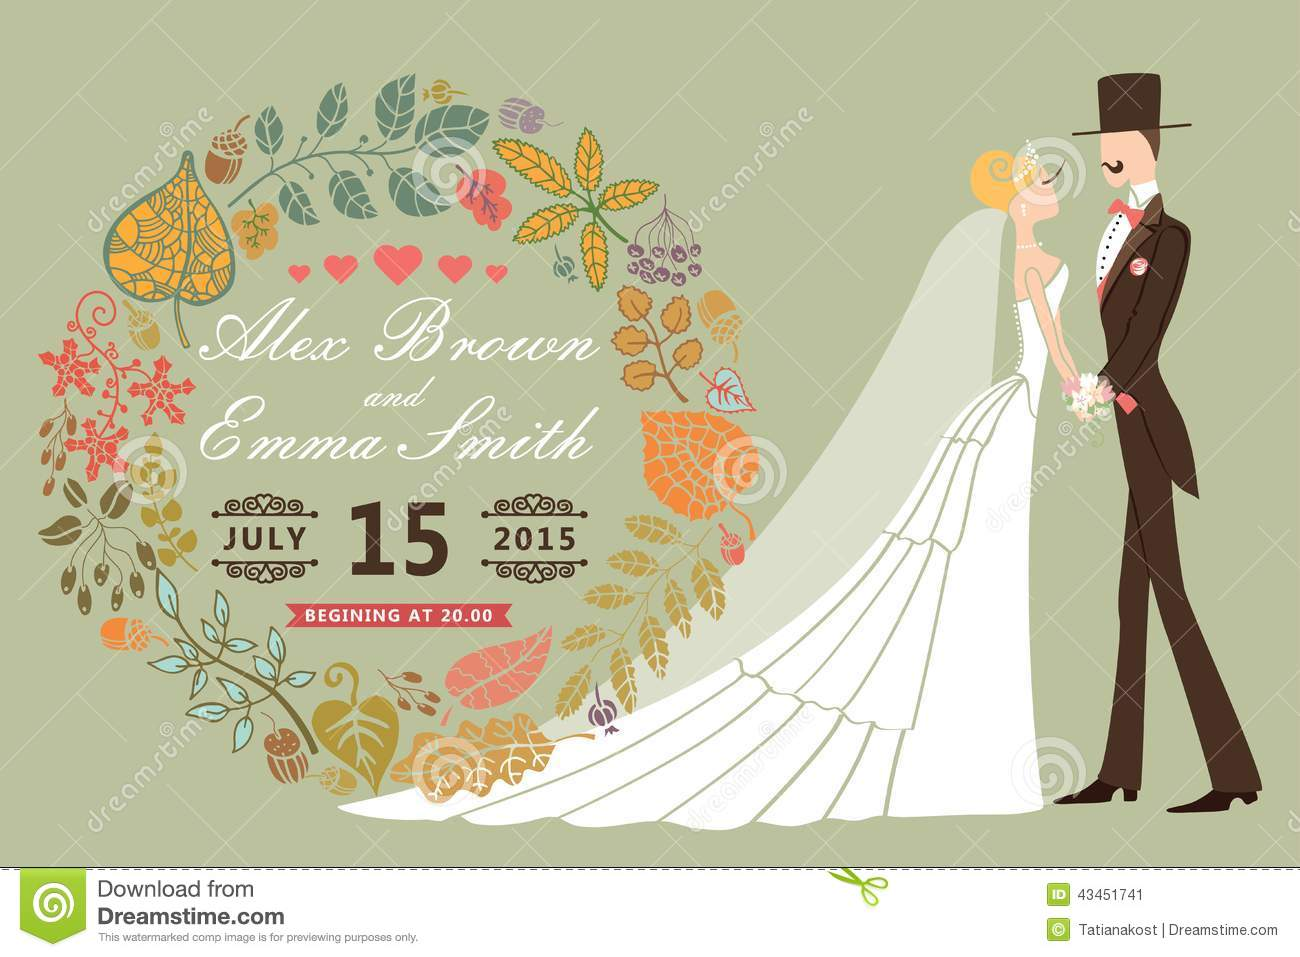 Vintage Wedding Invitation With Bridegroomautumn Leaves Wreath Royalty Free Illustration